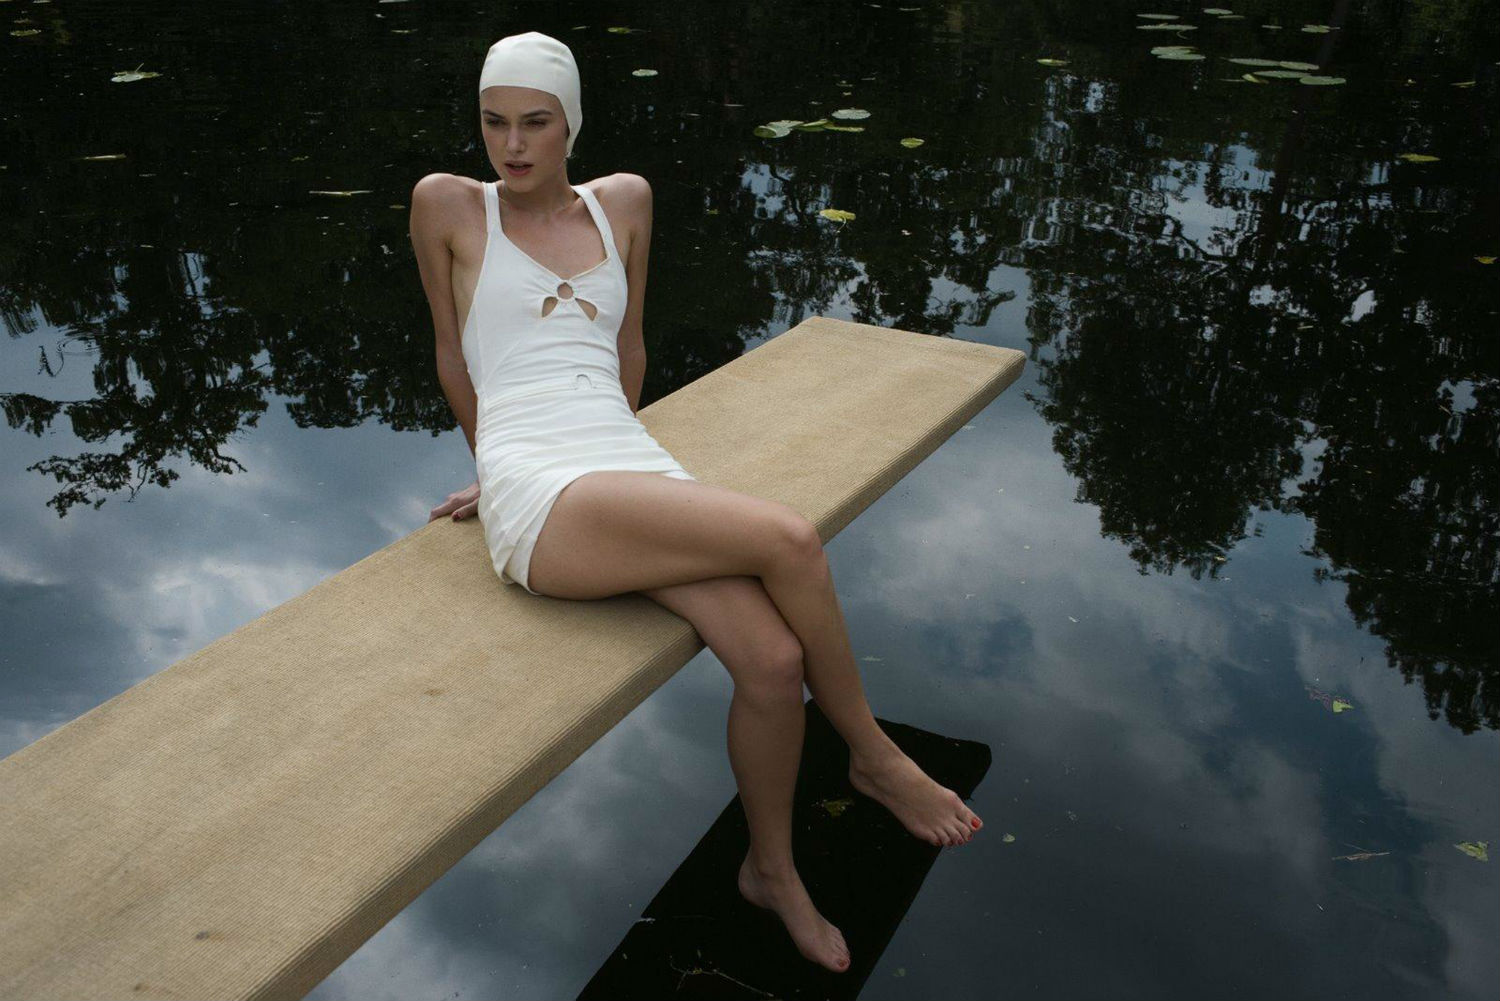 atonement keira knightley lake white bathing suit